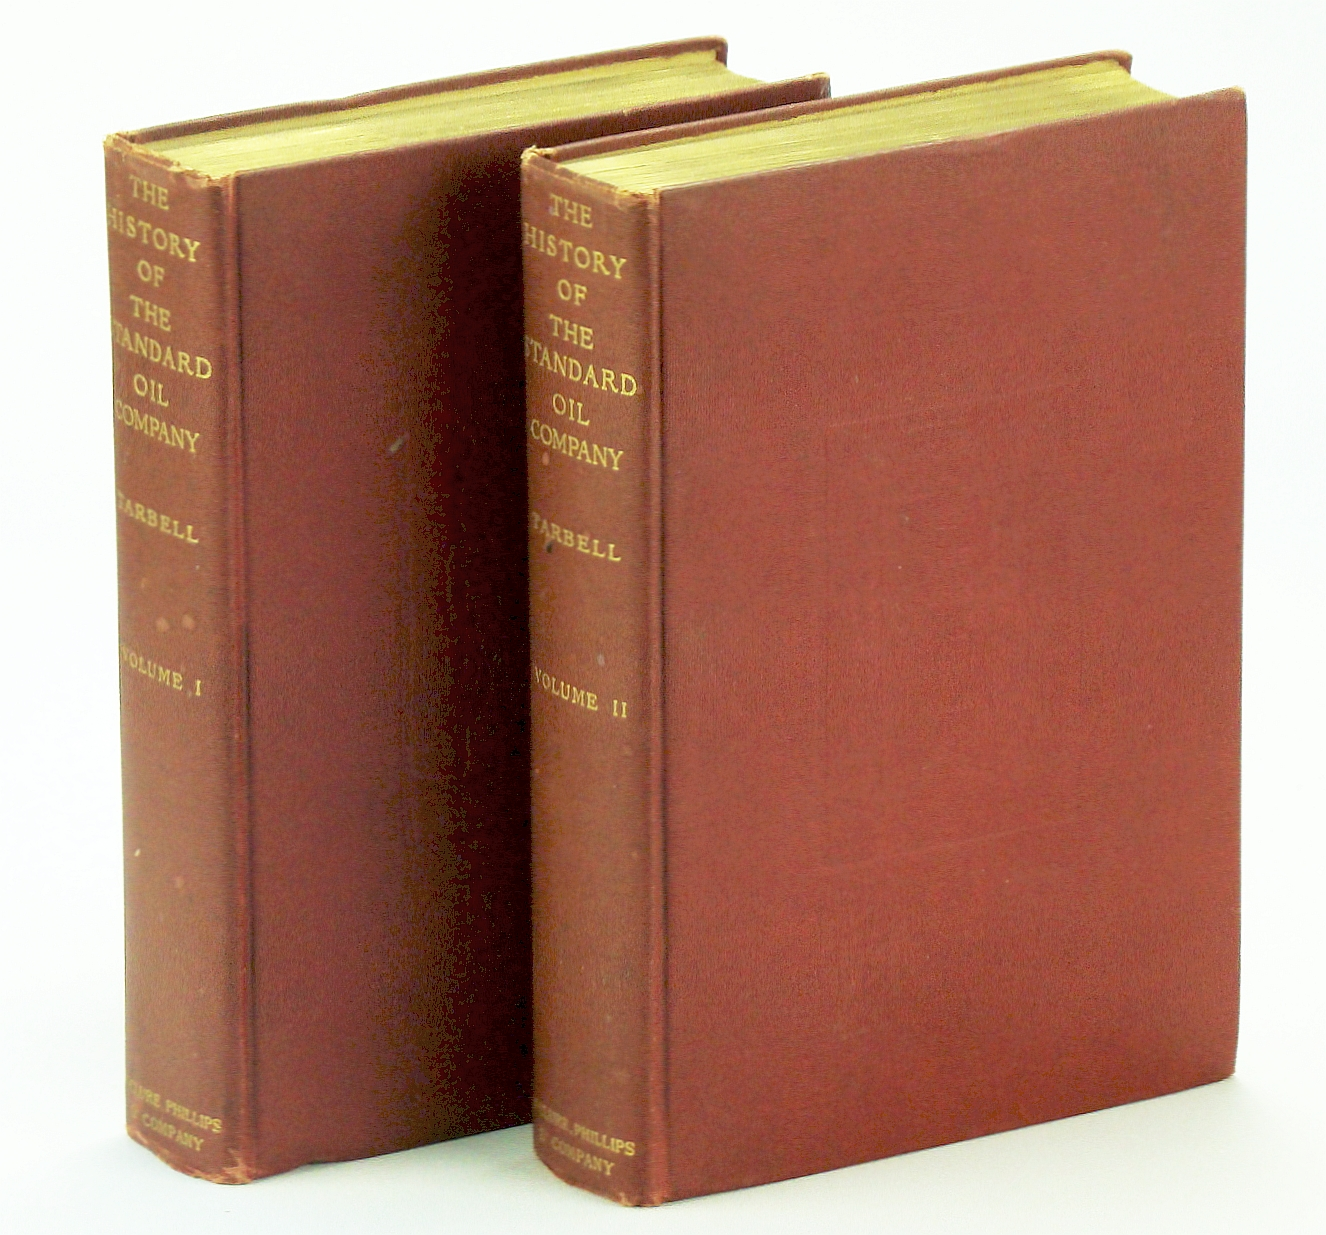 Image for The History of The Standard Oil Company - First Edition, Complete in Two Volumes